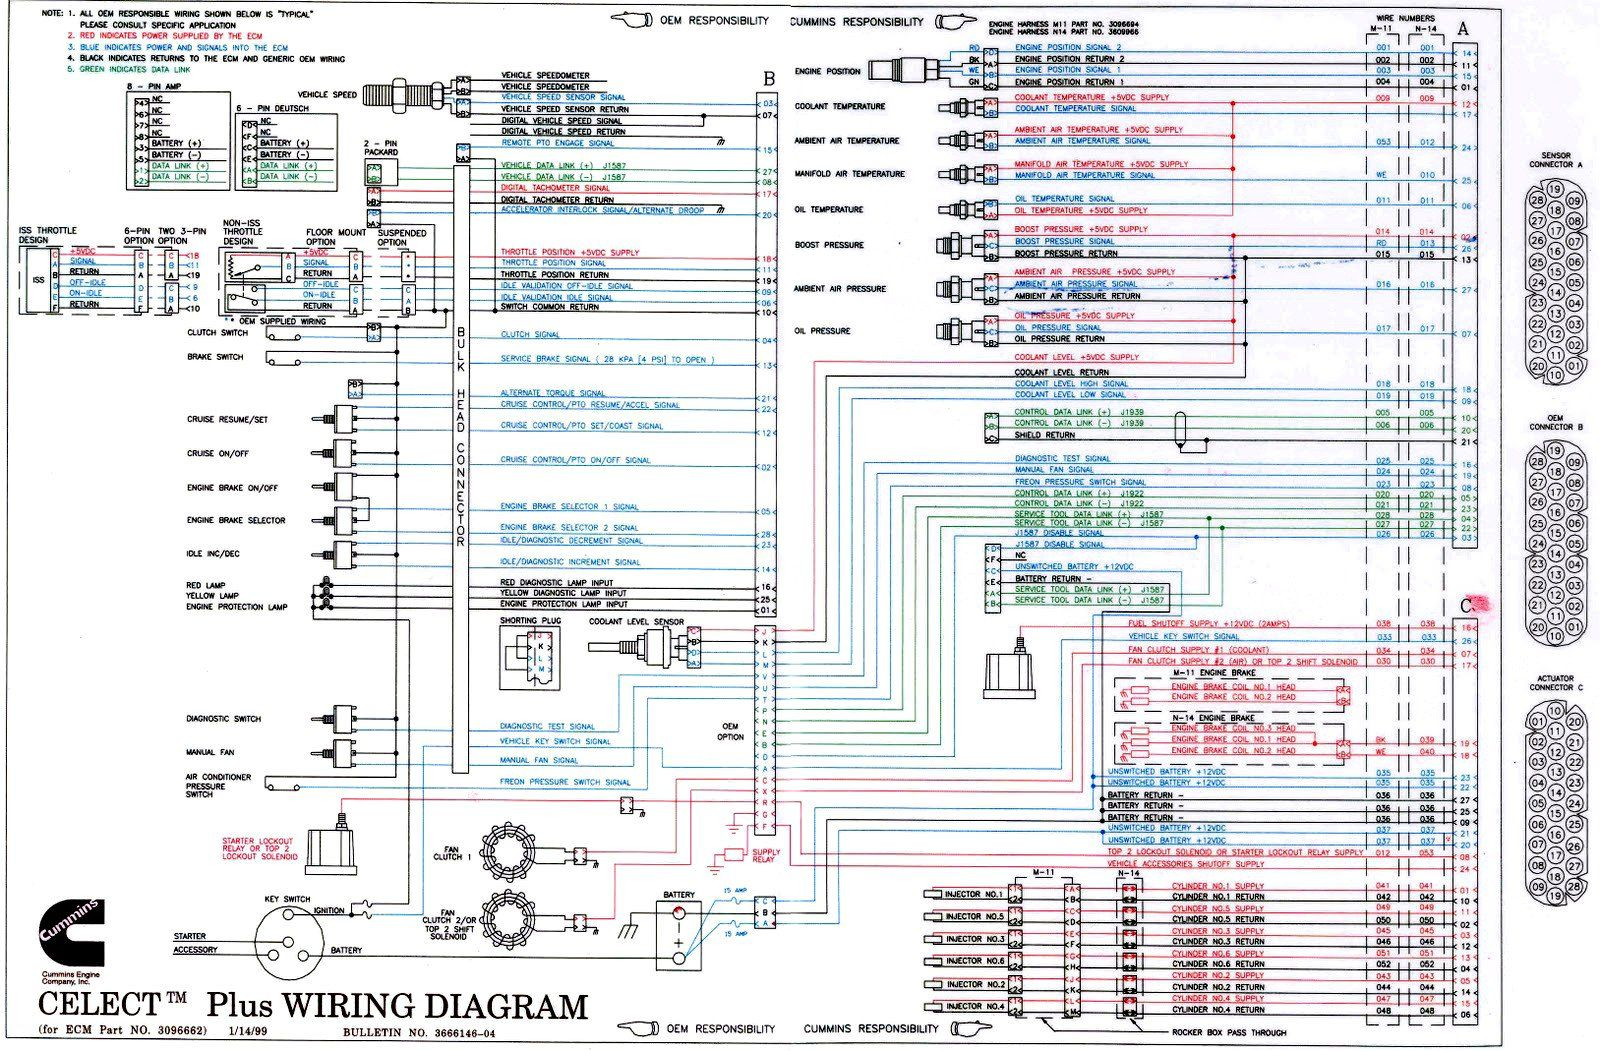 cummins celect ecm wiring diagram Collection-Cummins N14 Celect Plus Wiring Diagram To 100 Ideas Diagrams Isx Within 15-p